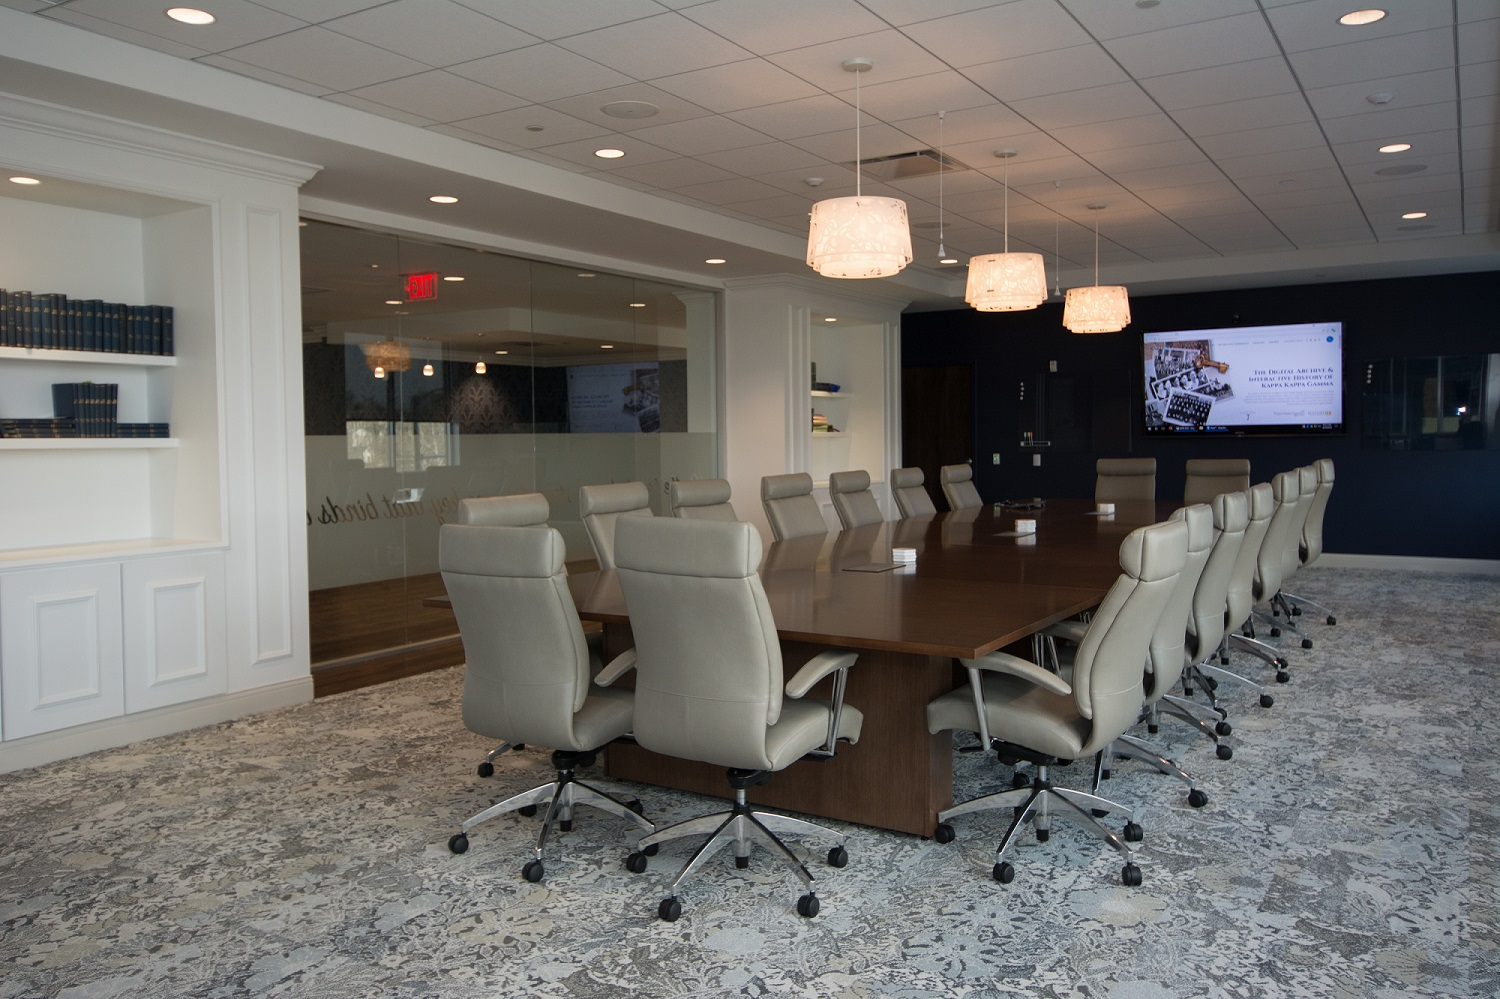 The board room features state-of-the-art technology for audio and video conferencing, including collaboration tools  , discreet ceiling microphones, and touch-screen controllers.